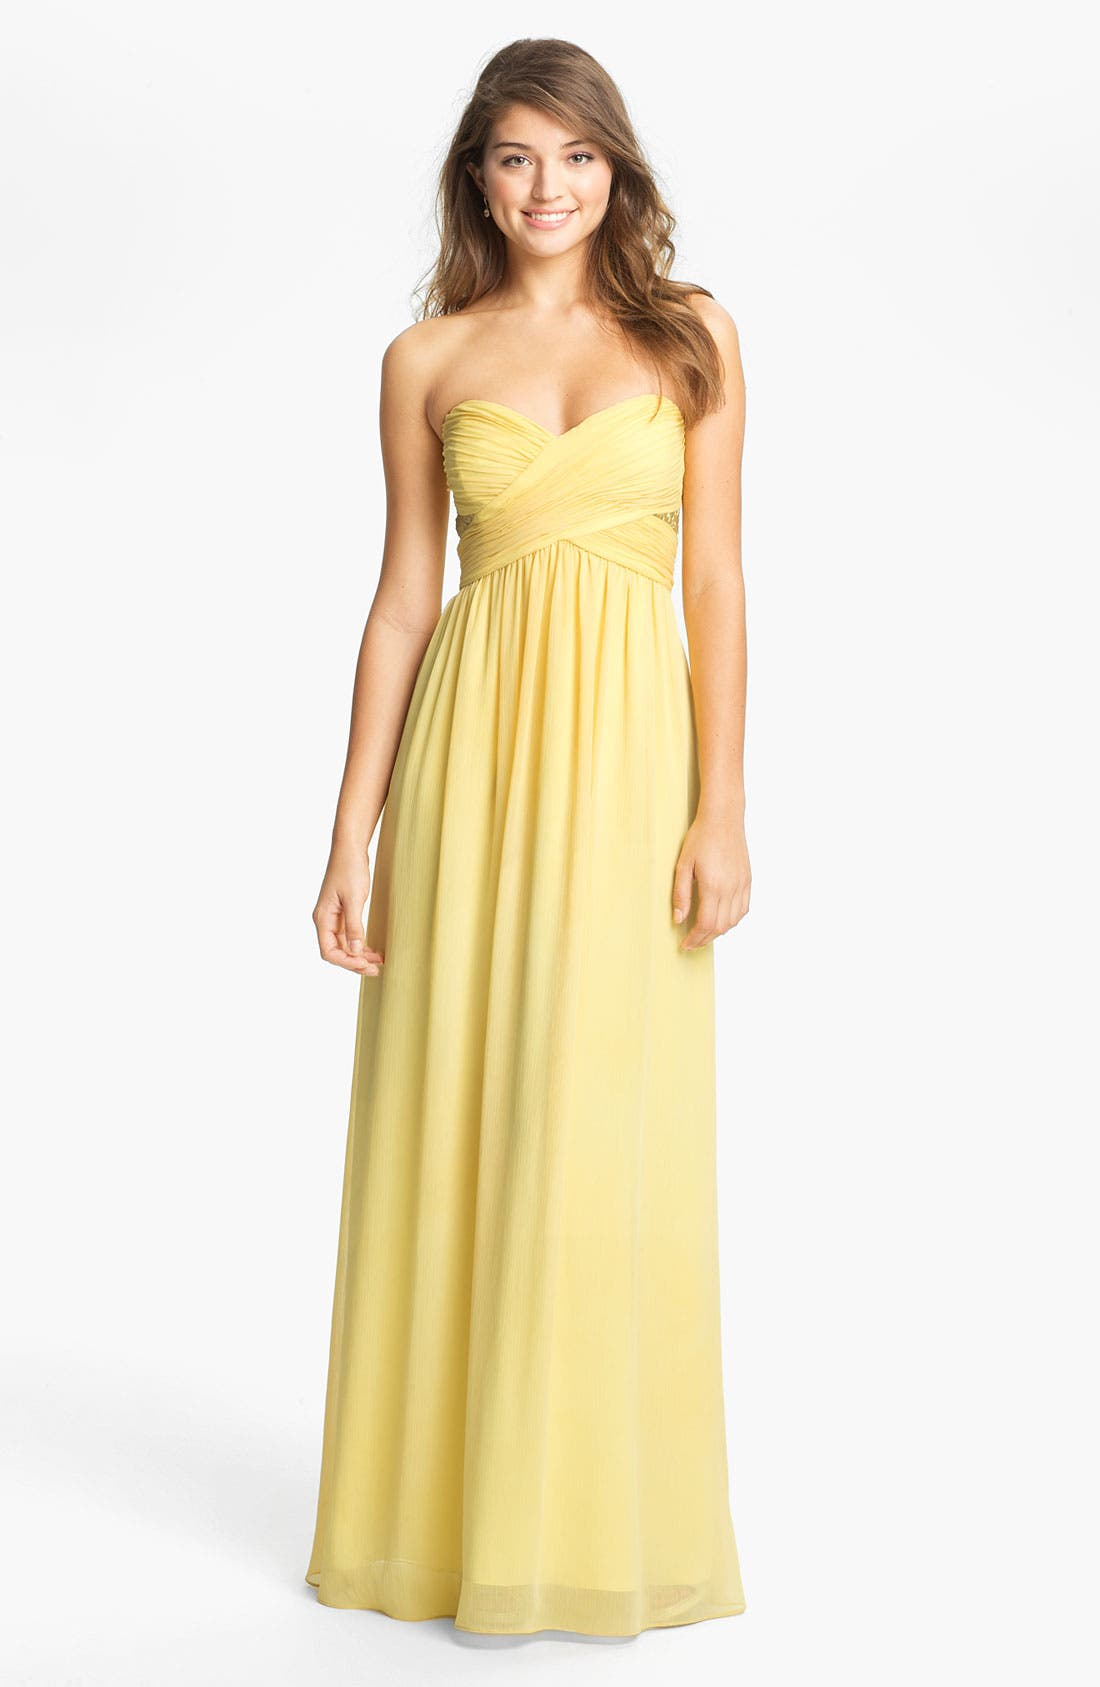 Alternate Image 1 Selected - Max & Cleo Strapless Chiffon Gown